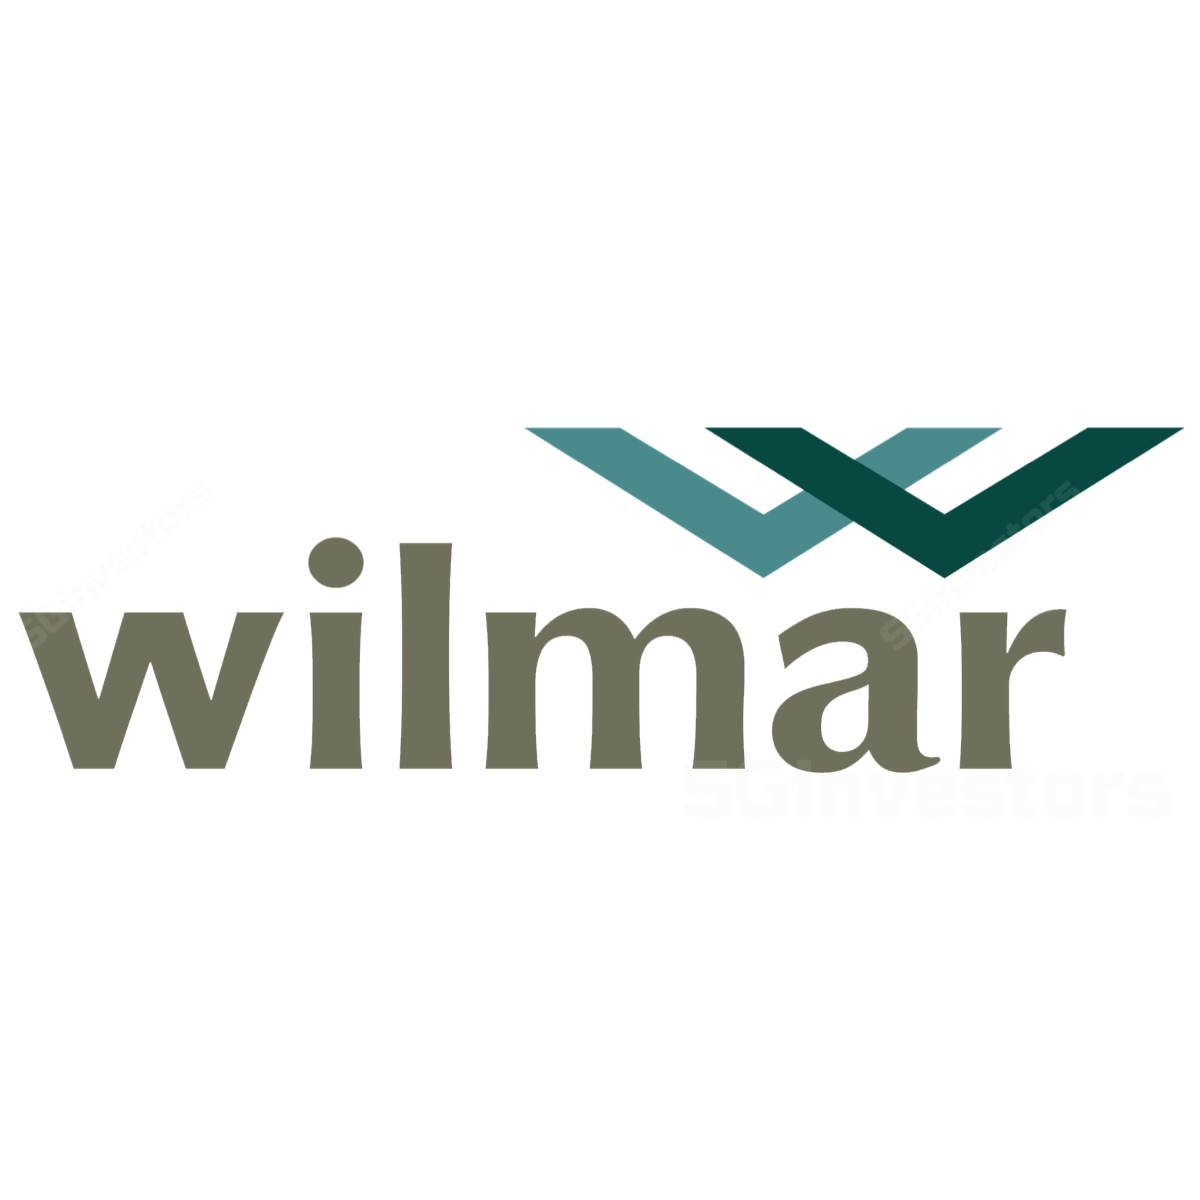 Wilmar International - UOB Kay Hian Research 2018-08-15: Outlook Remains Positive